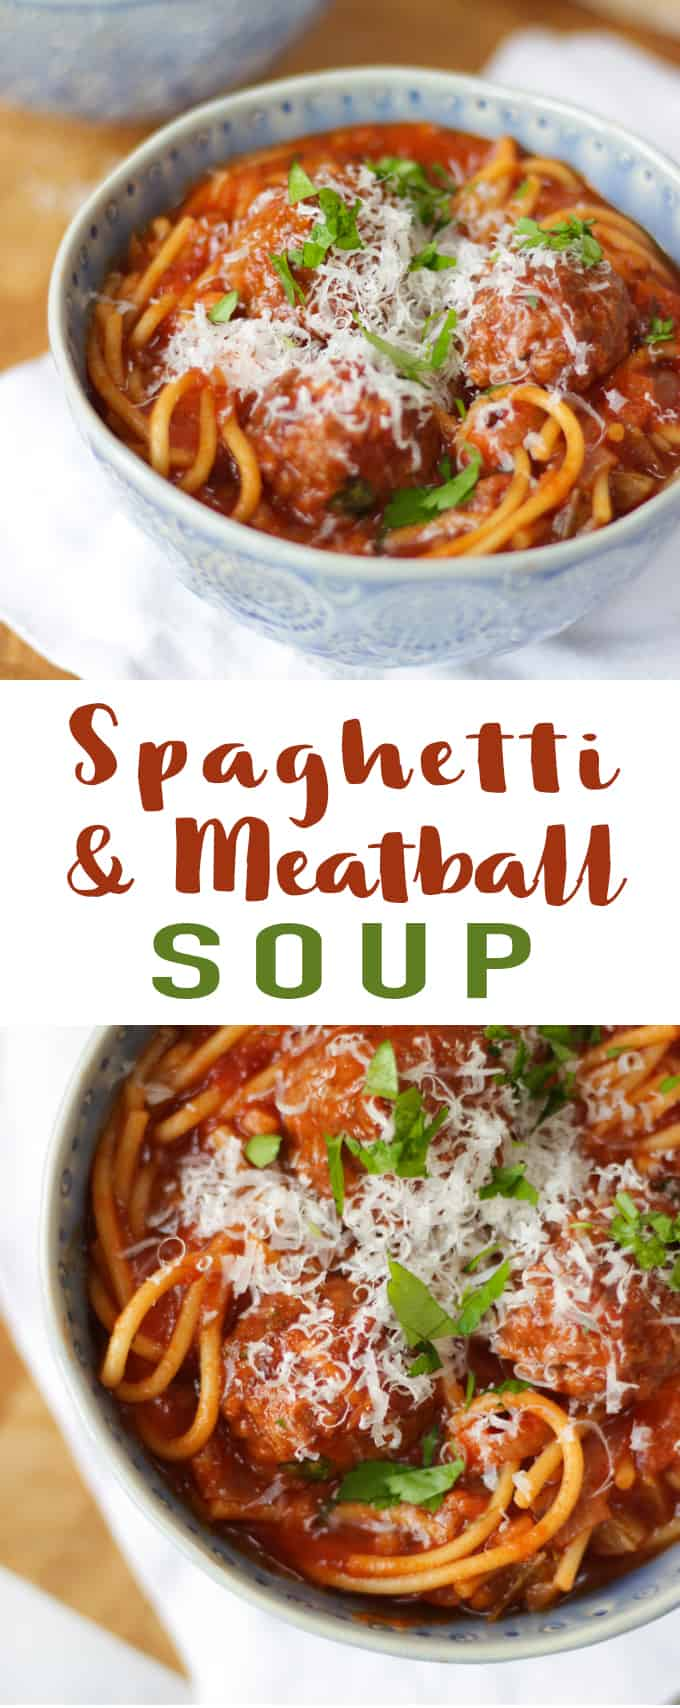 This Easy Meatball Soup Recipe is perfect for a quick supper or for using up leftover meatballs. The family pleaser midweek meal is a dinner that everyone will enjoy. Packed with veggies and spaghetti, it also freezes really well.